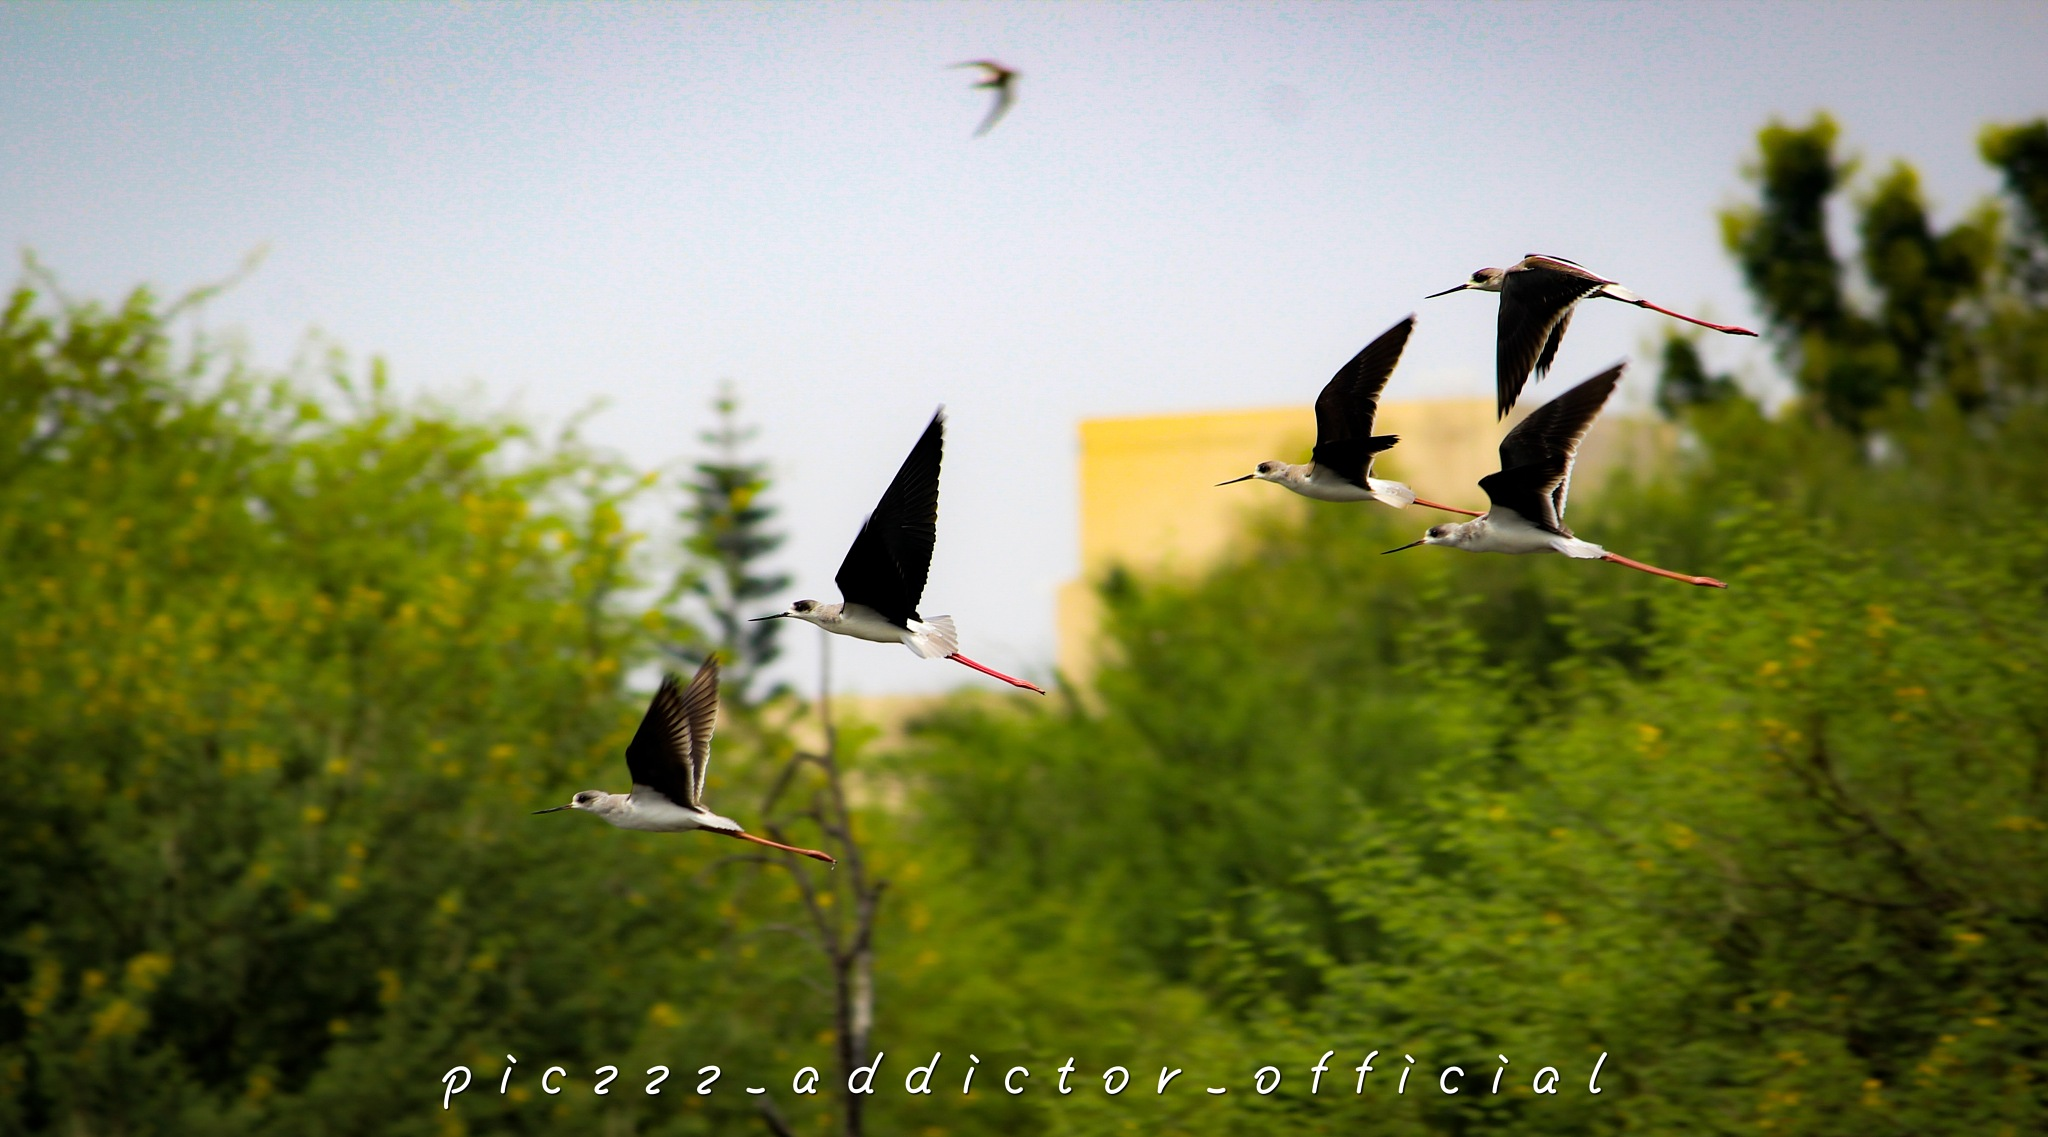 Untitled by Piczzz_addictor_photography